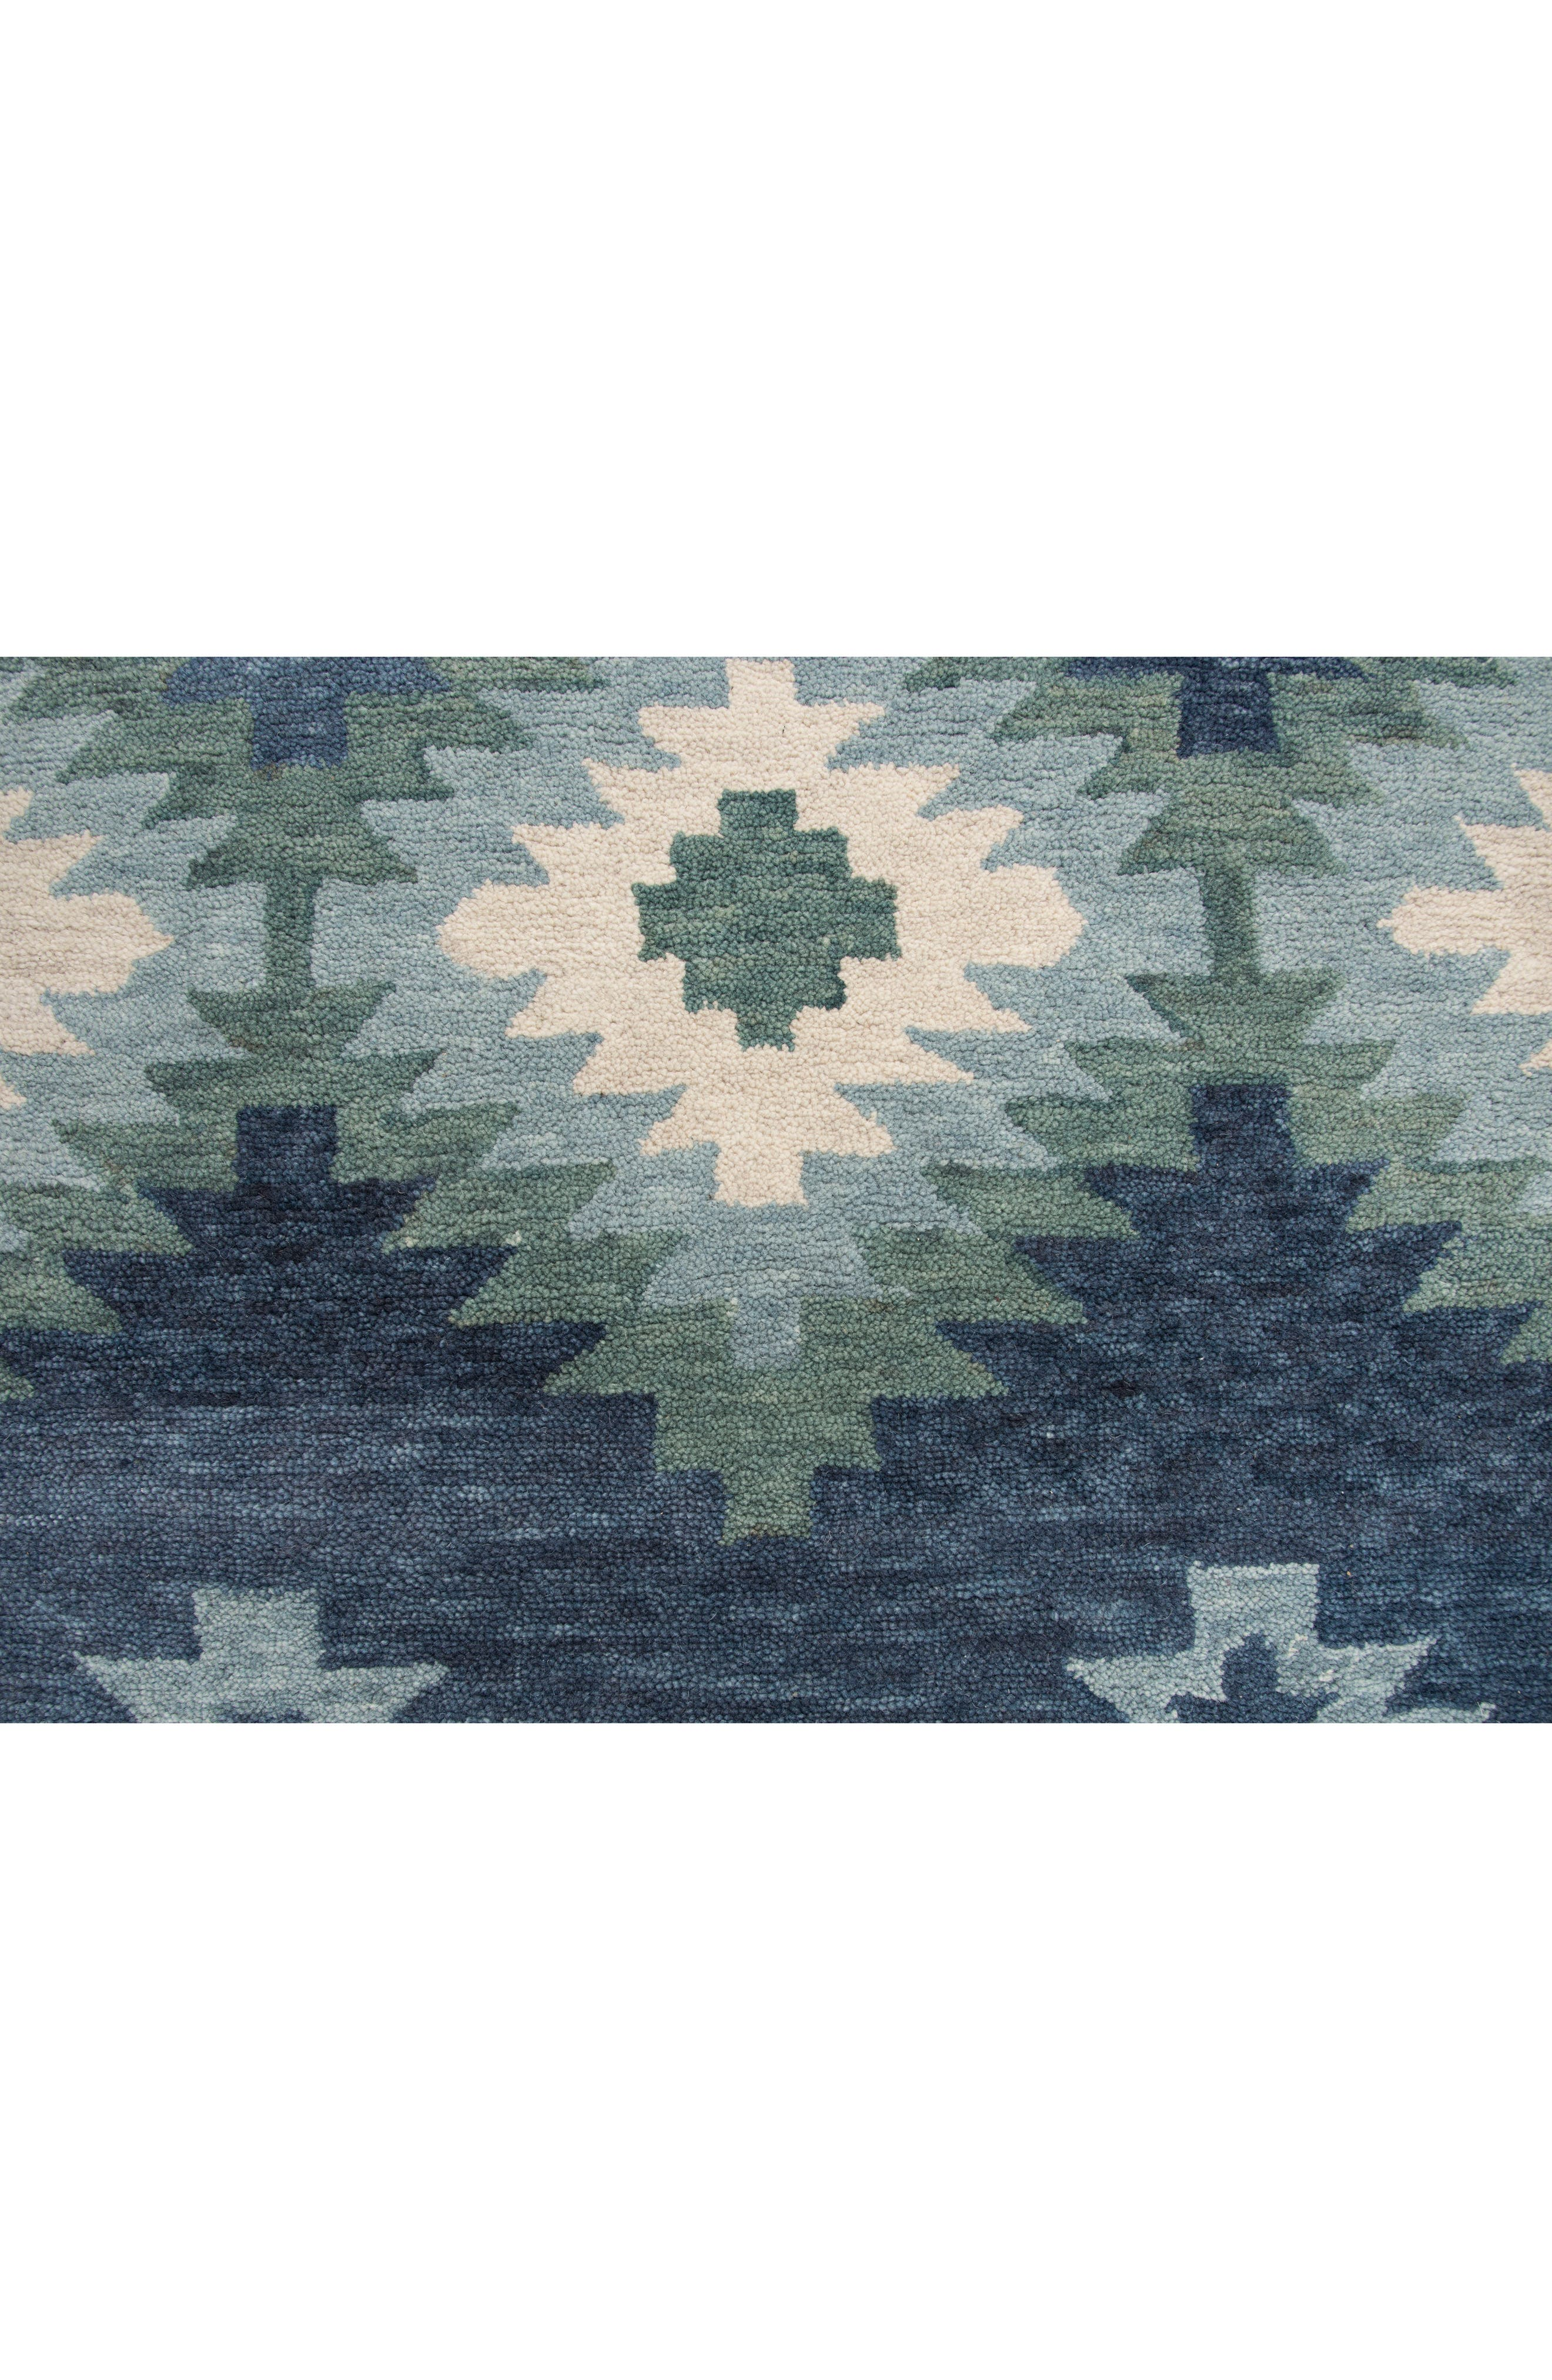 Taos Hand Tufted Wool Area Rug,                             Alternate thumbnail 2, color,                             400